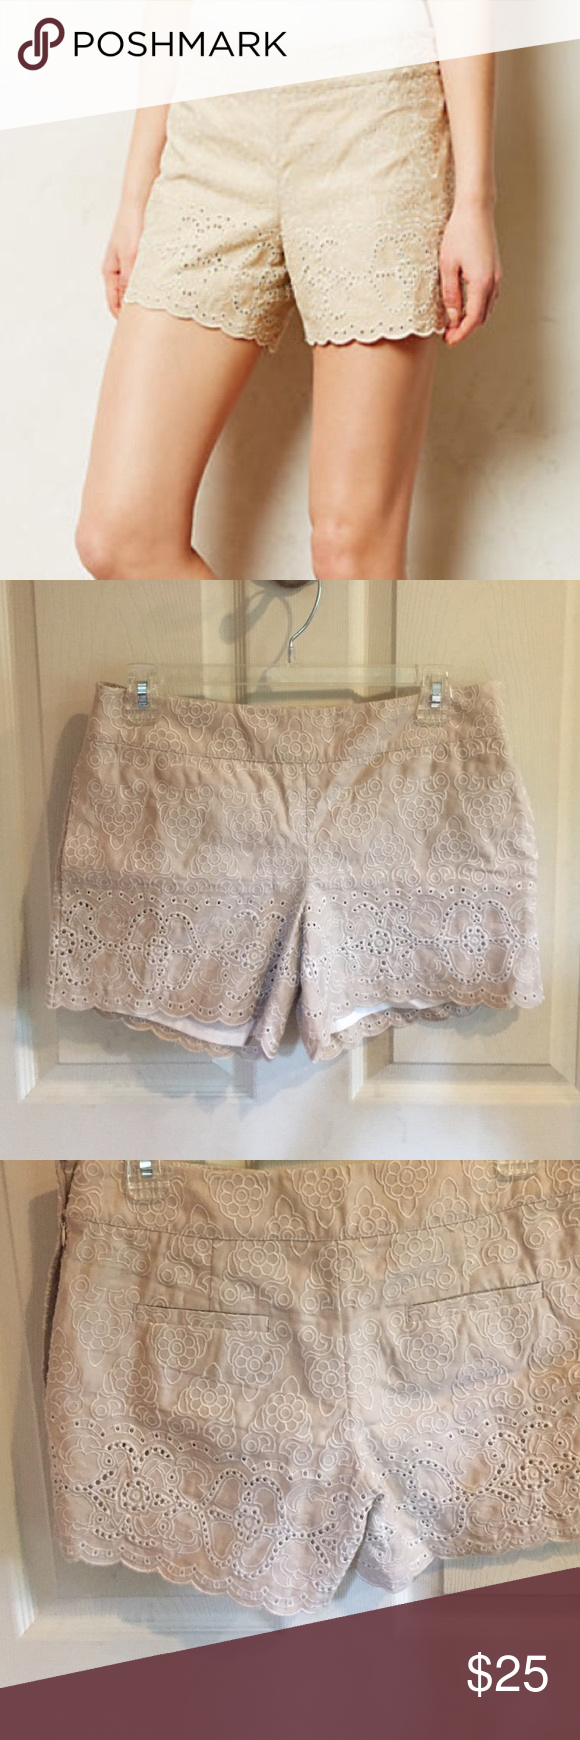 "Anthropologie Scalloped Eyelet Shorts By Elevenses. These are super cute, but too big for me. Linen/cotton with a cotton lining. Side zip; back pockets. Waist is about 15.5"" flat no dip; rise is about 8.25""; inseam is about 4.5"". Gently worn. Anthropologie Shorts"